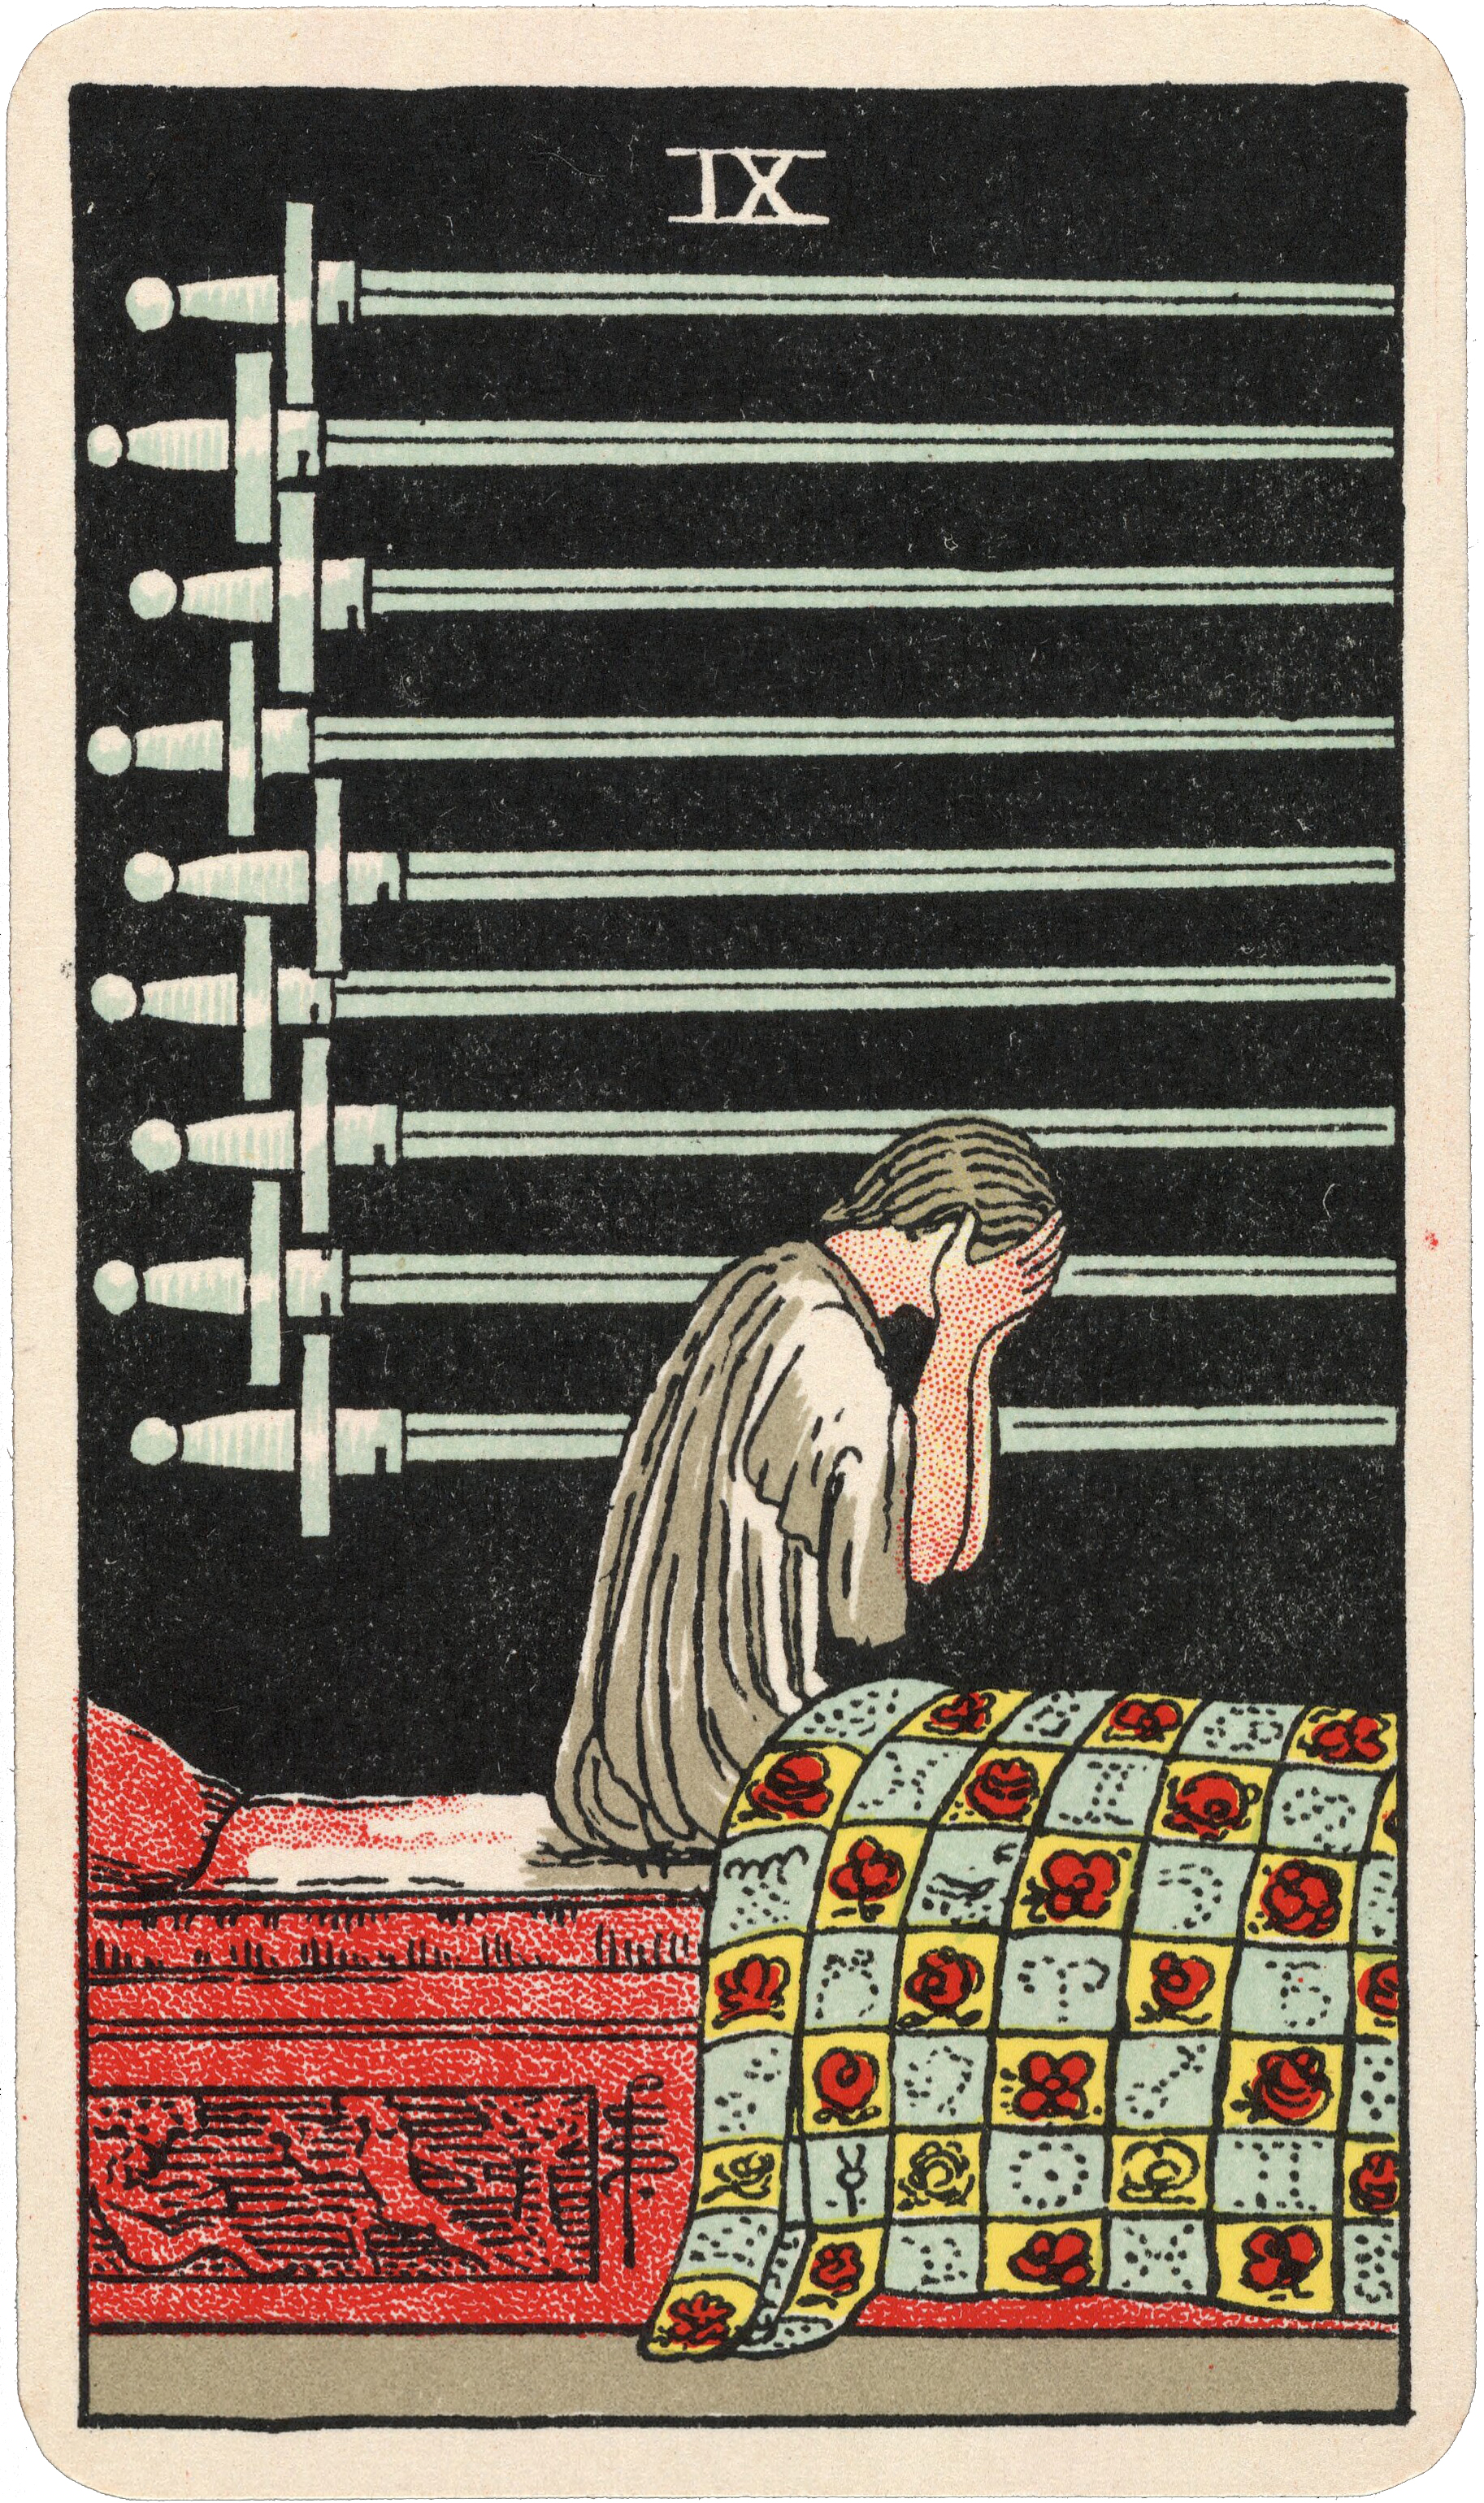 IX of Swords from the Rider-Waite-Smith Tarot , Pamela Colman Smith Beinecke Rare Book and Manuscript Library, c. 1937